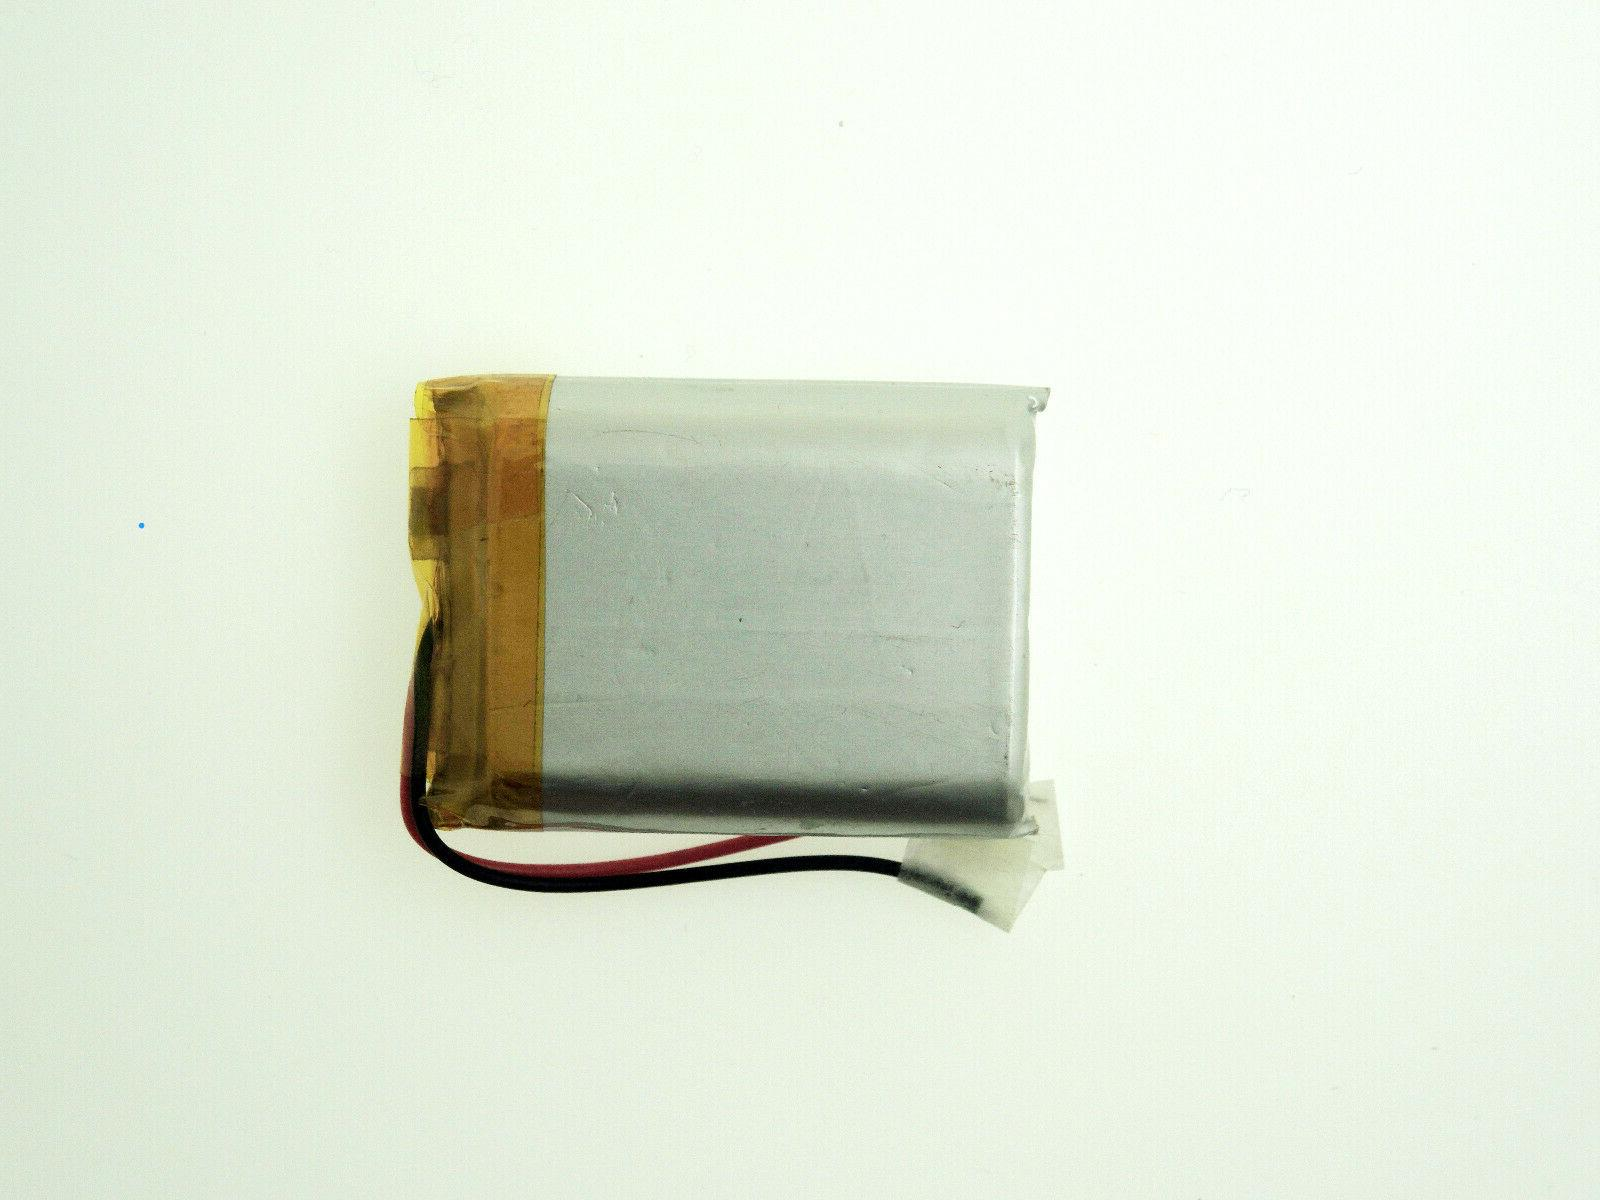 Polymer LiPo Rechargeable Battery